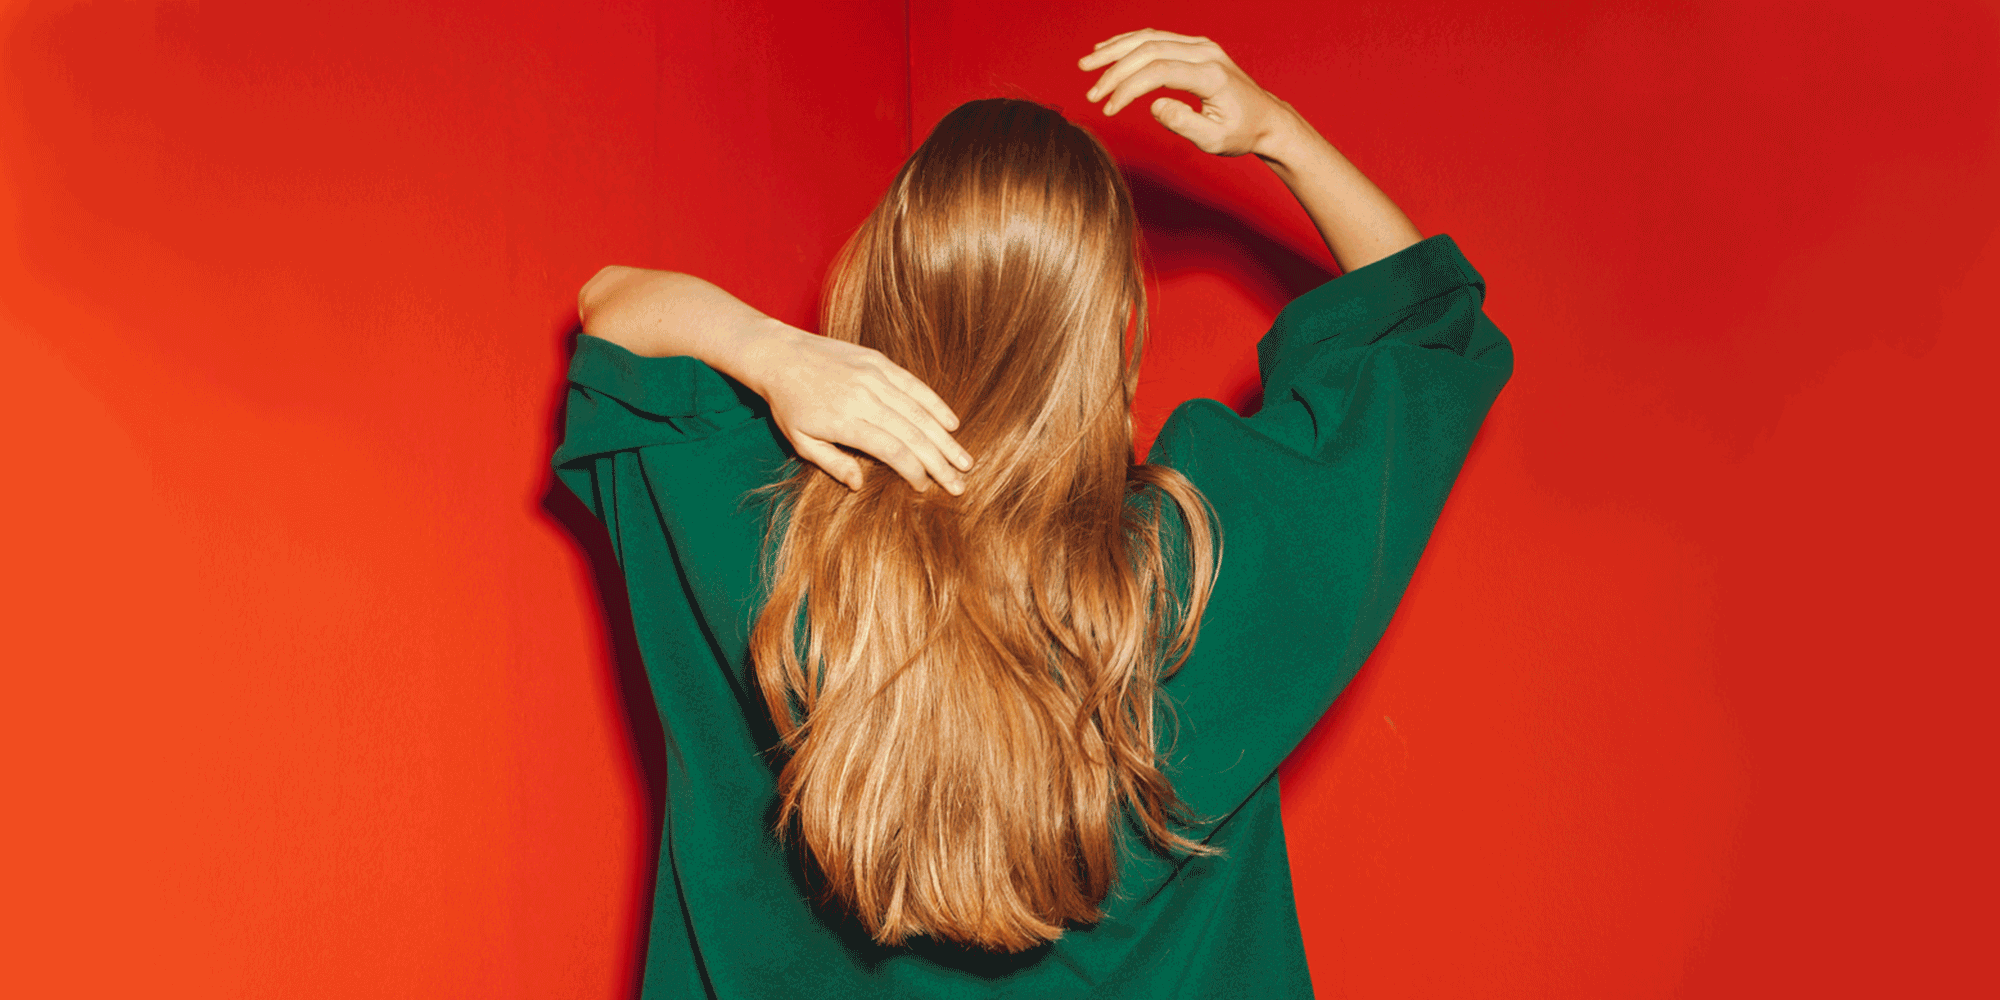 The Actual Benefits of Taking Biotin for Your Hair, According to the Experts